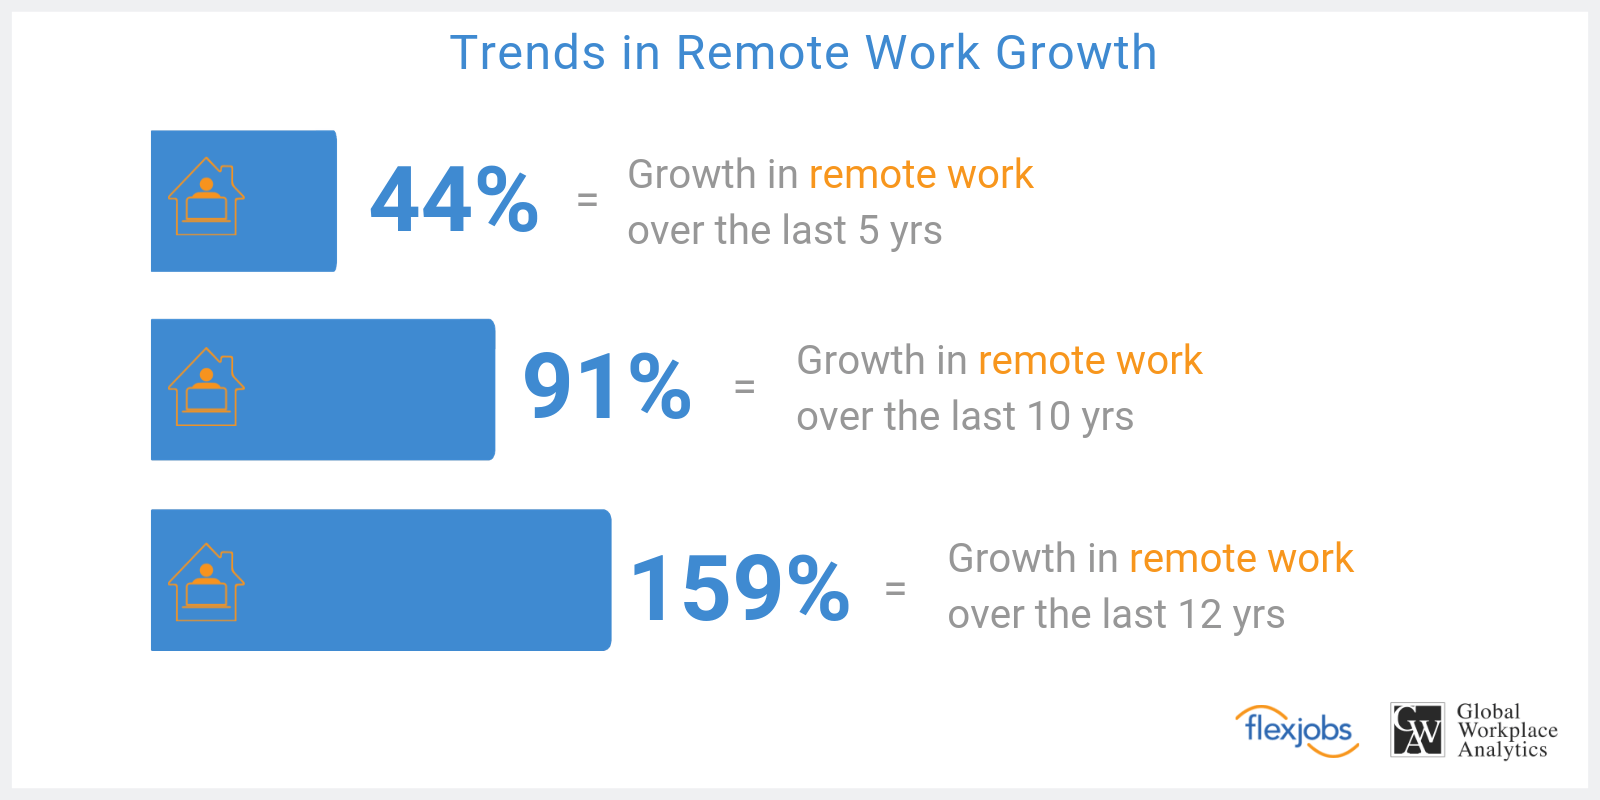 Remote work growth trends